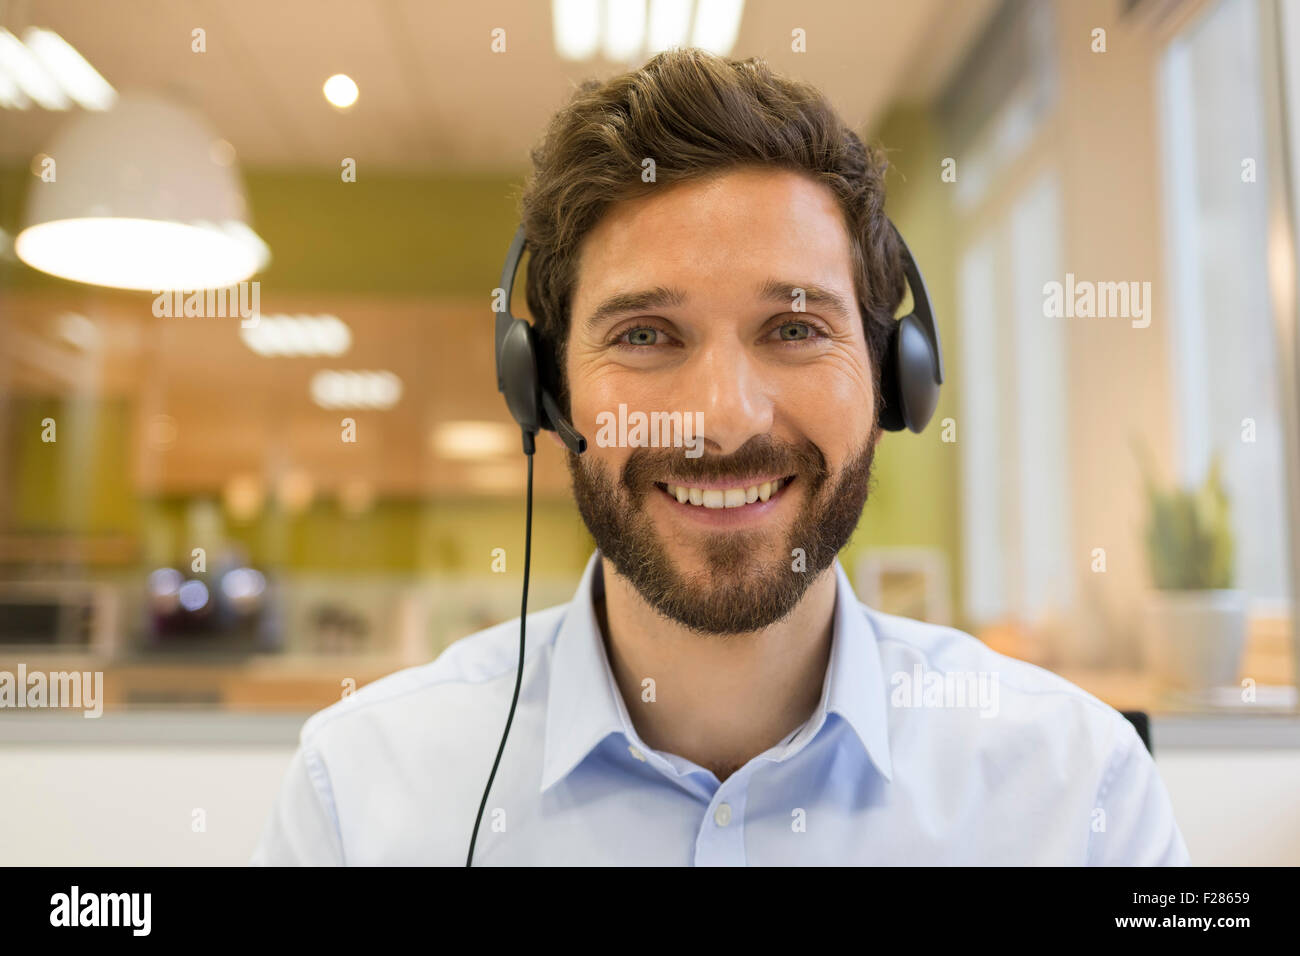 Portrait of smiling man wearing headset en open space Banque D'Images